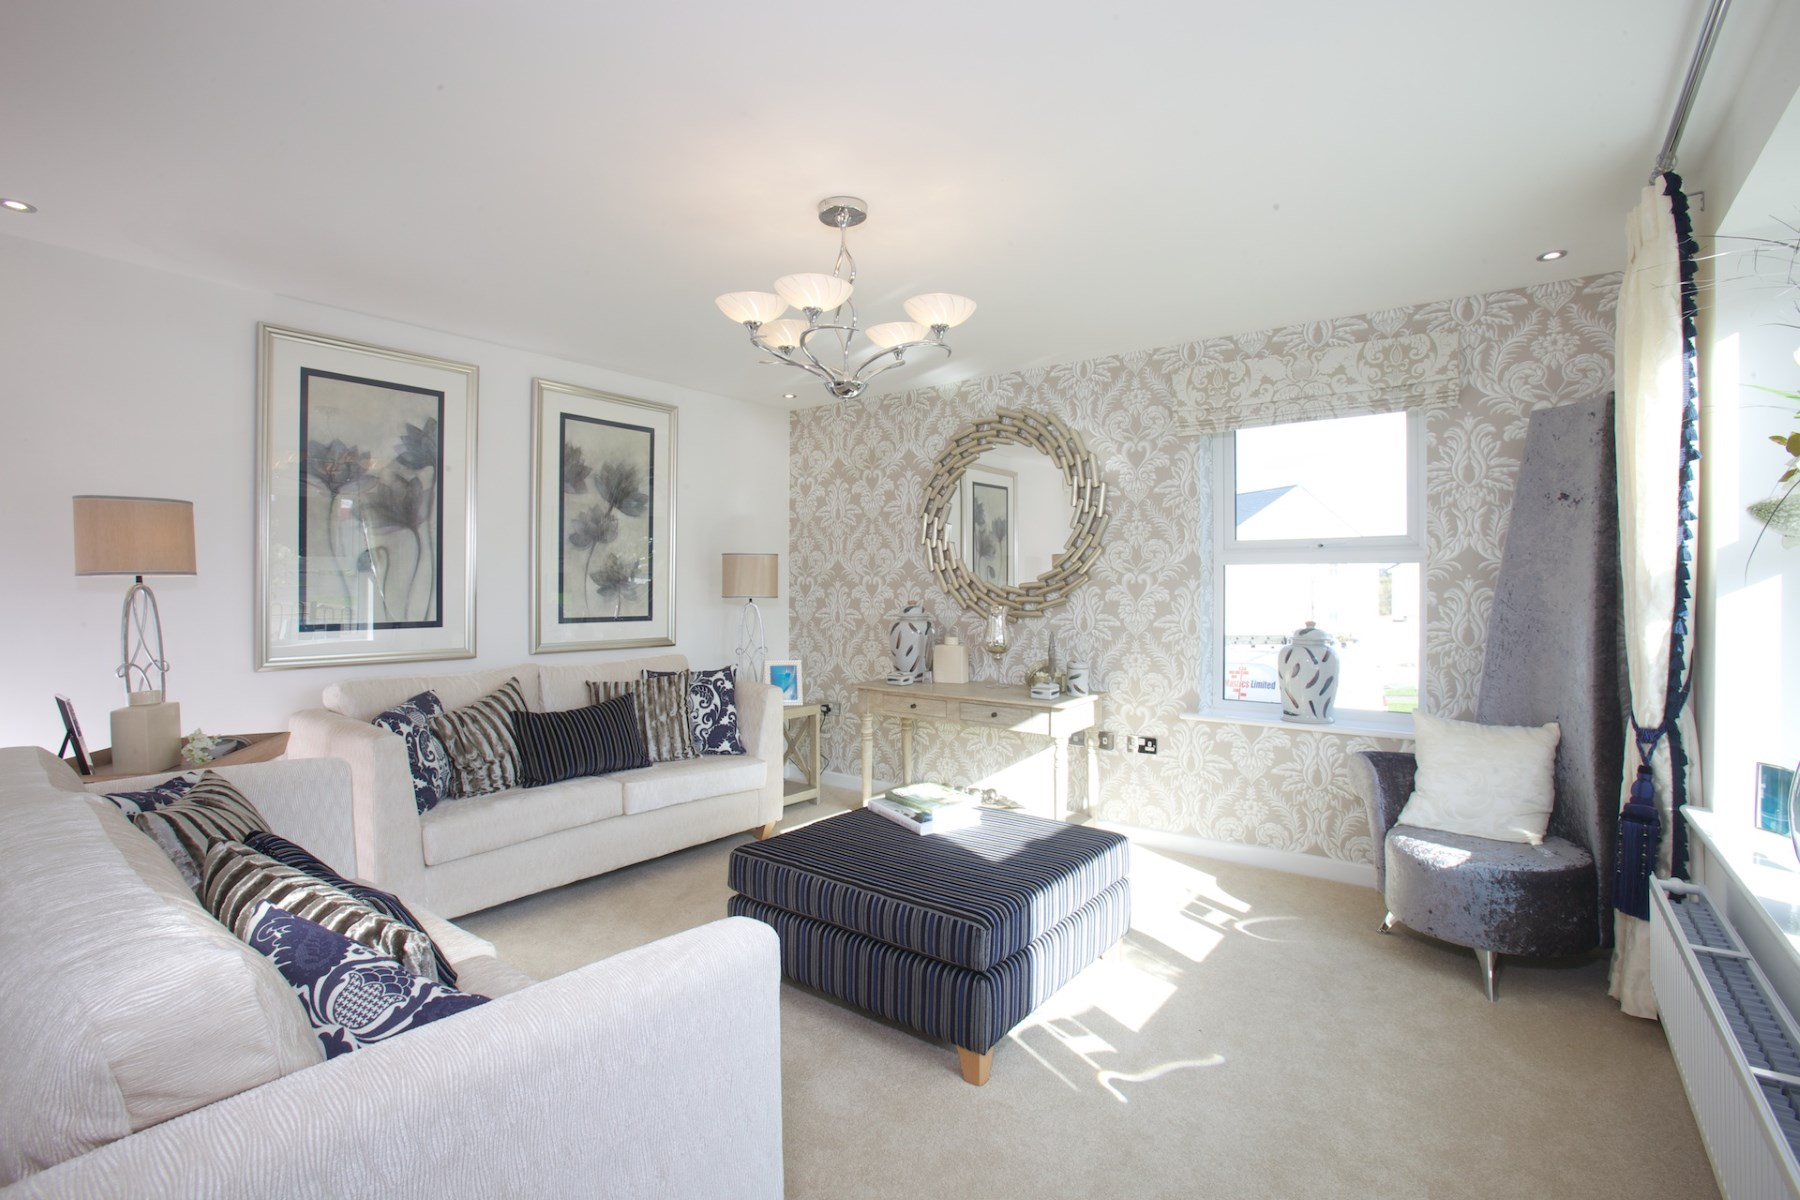 The stanton plot 50 taylor wimpey for Show home living room ideas